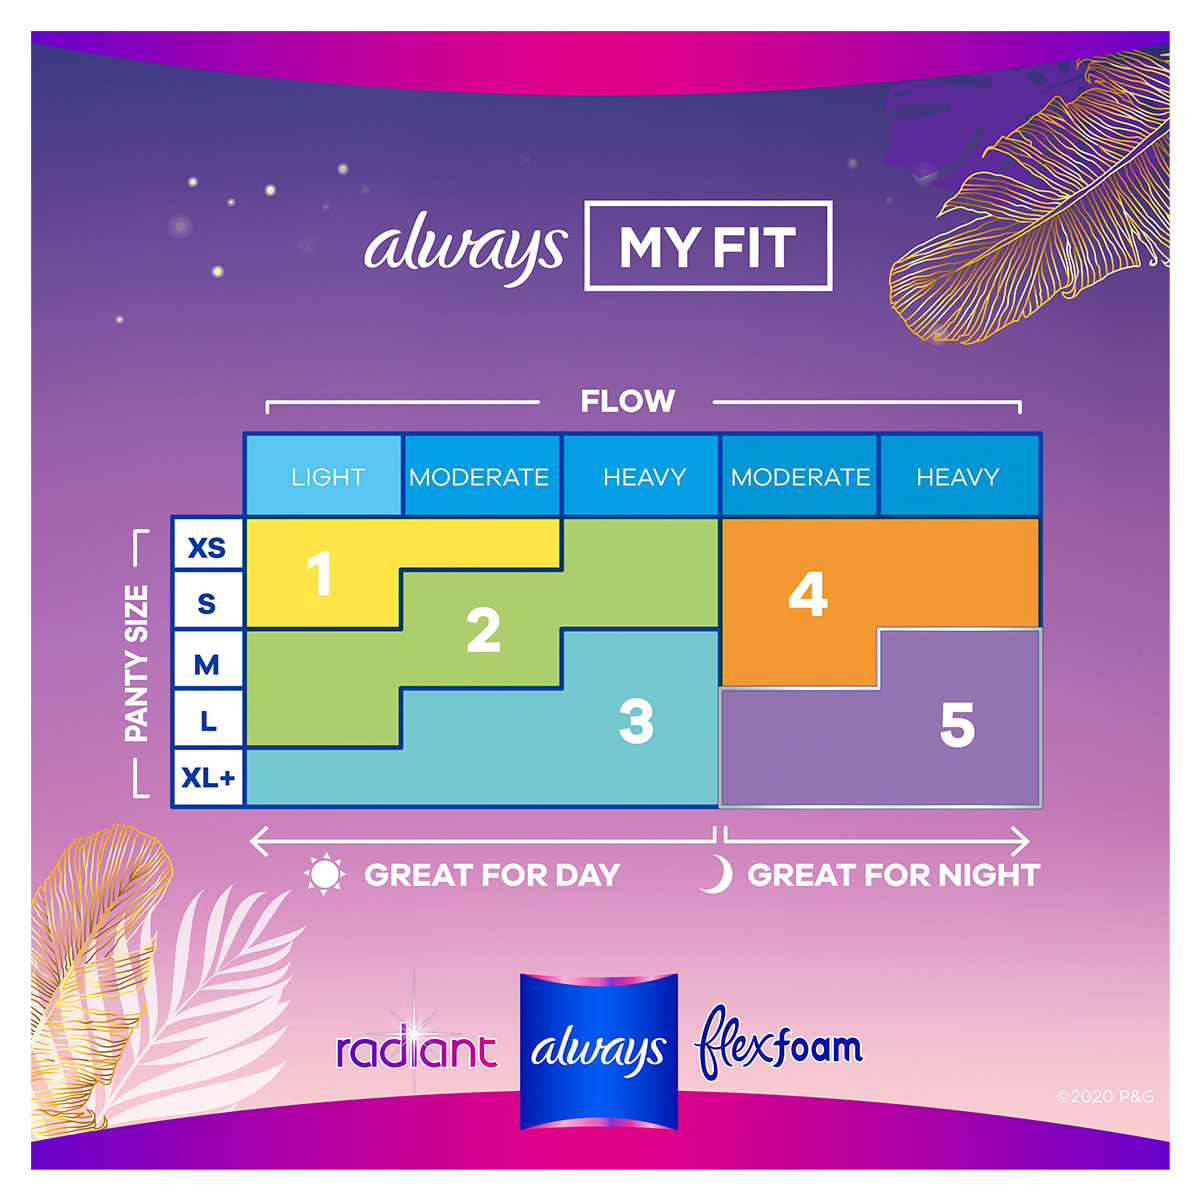 Always Radiant FlexFoam Night